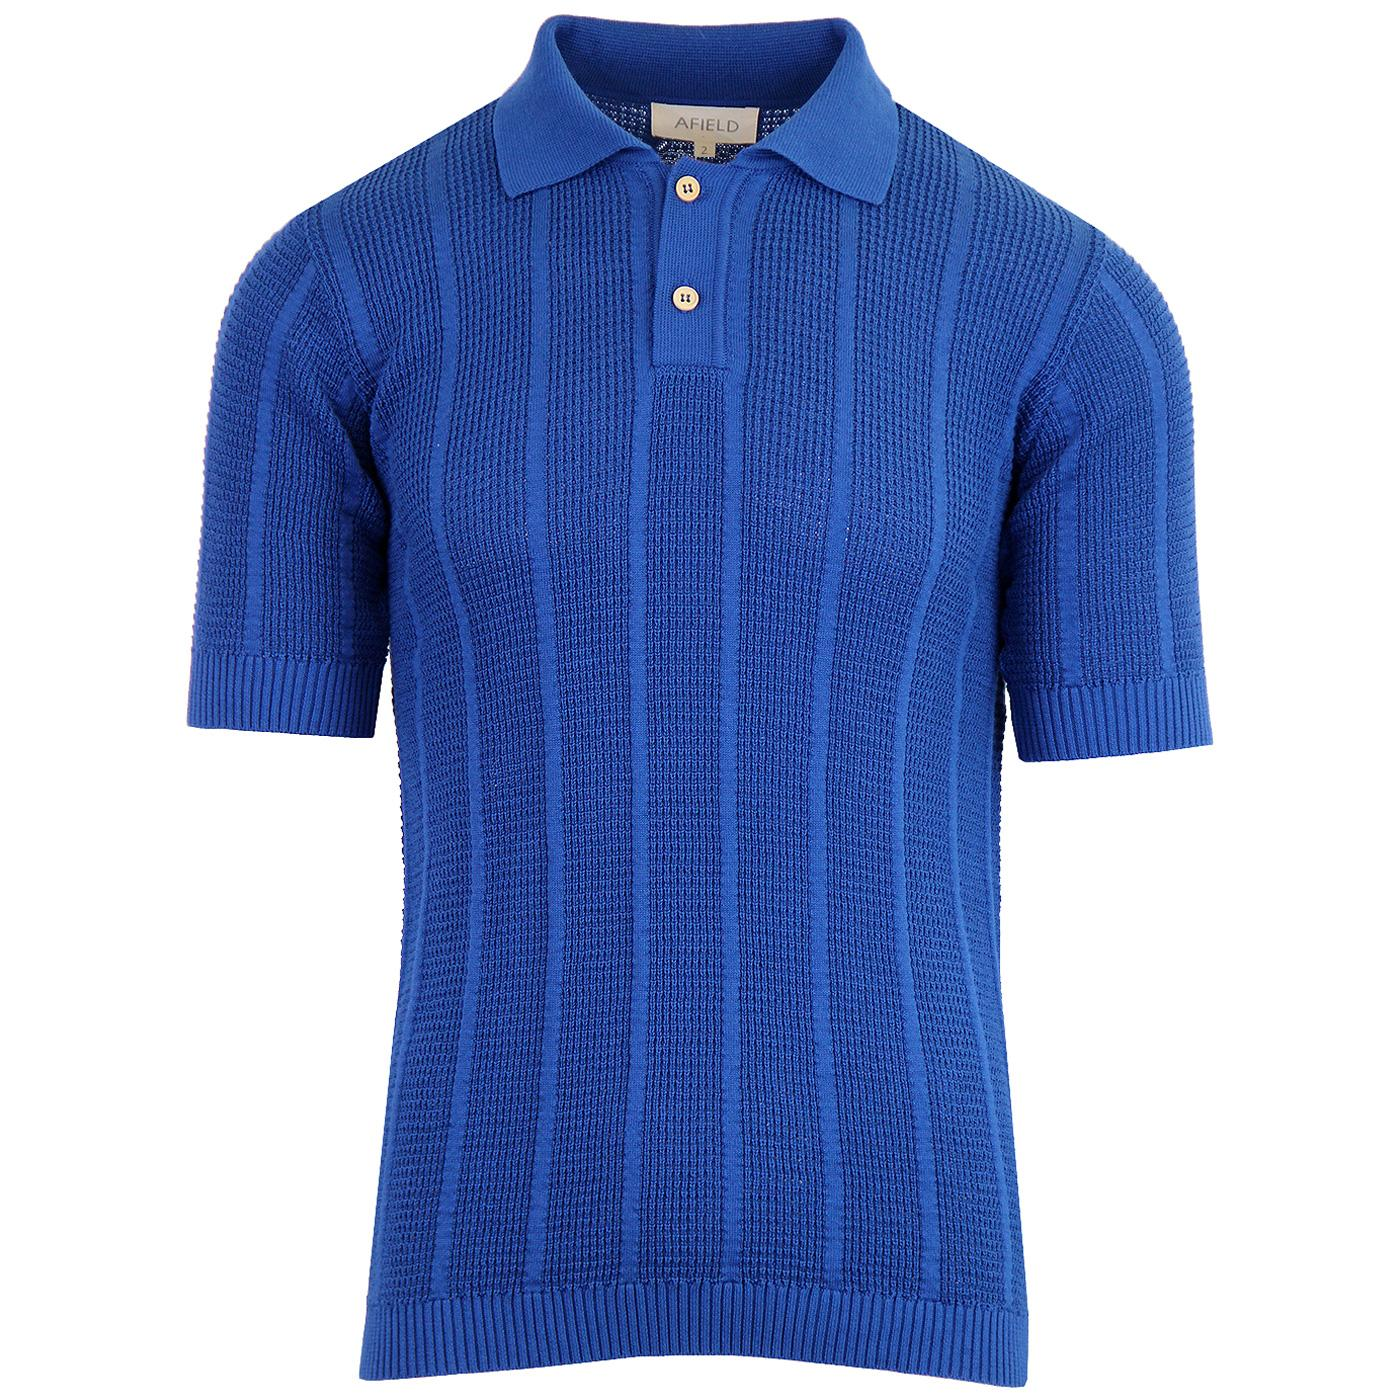 Aaron AFIELD Mens Retro 60s Knitted Crepe Polo Bl